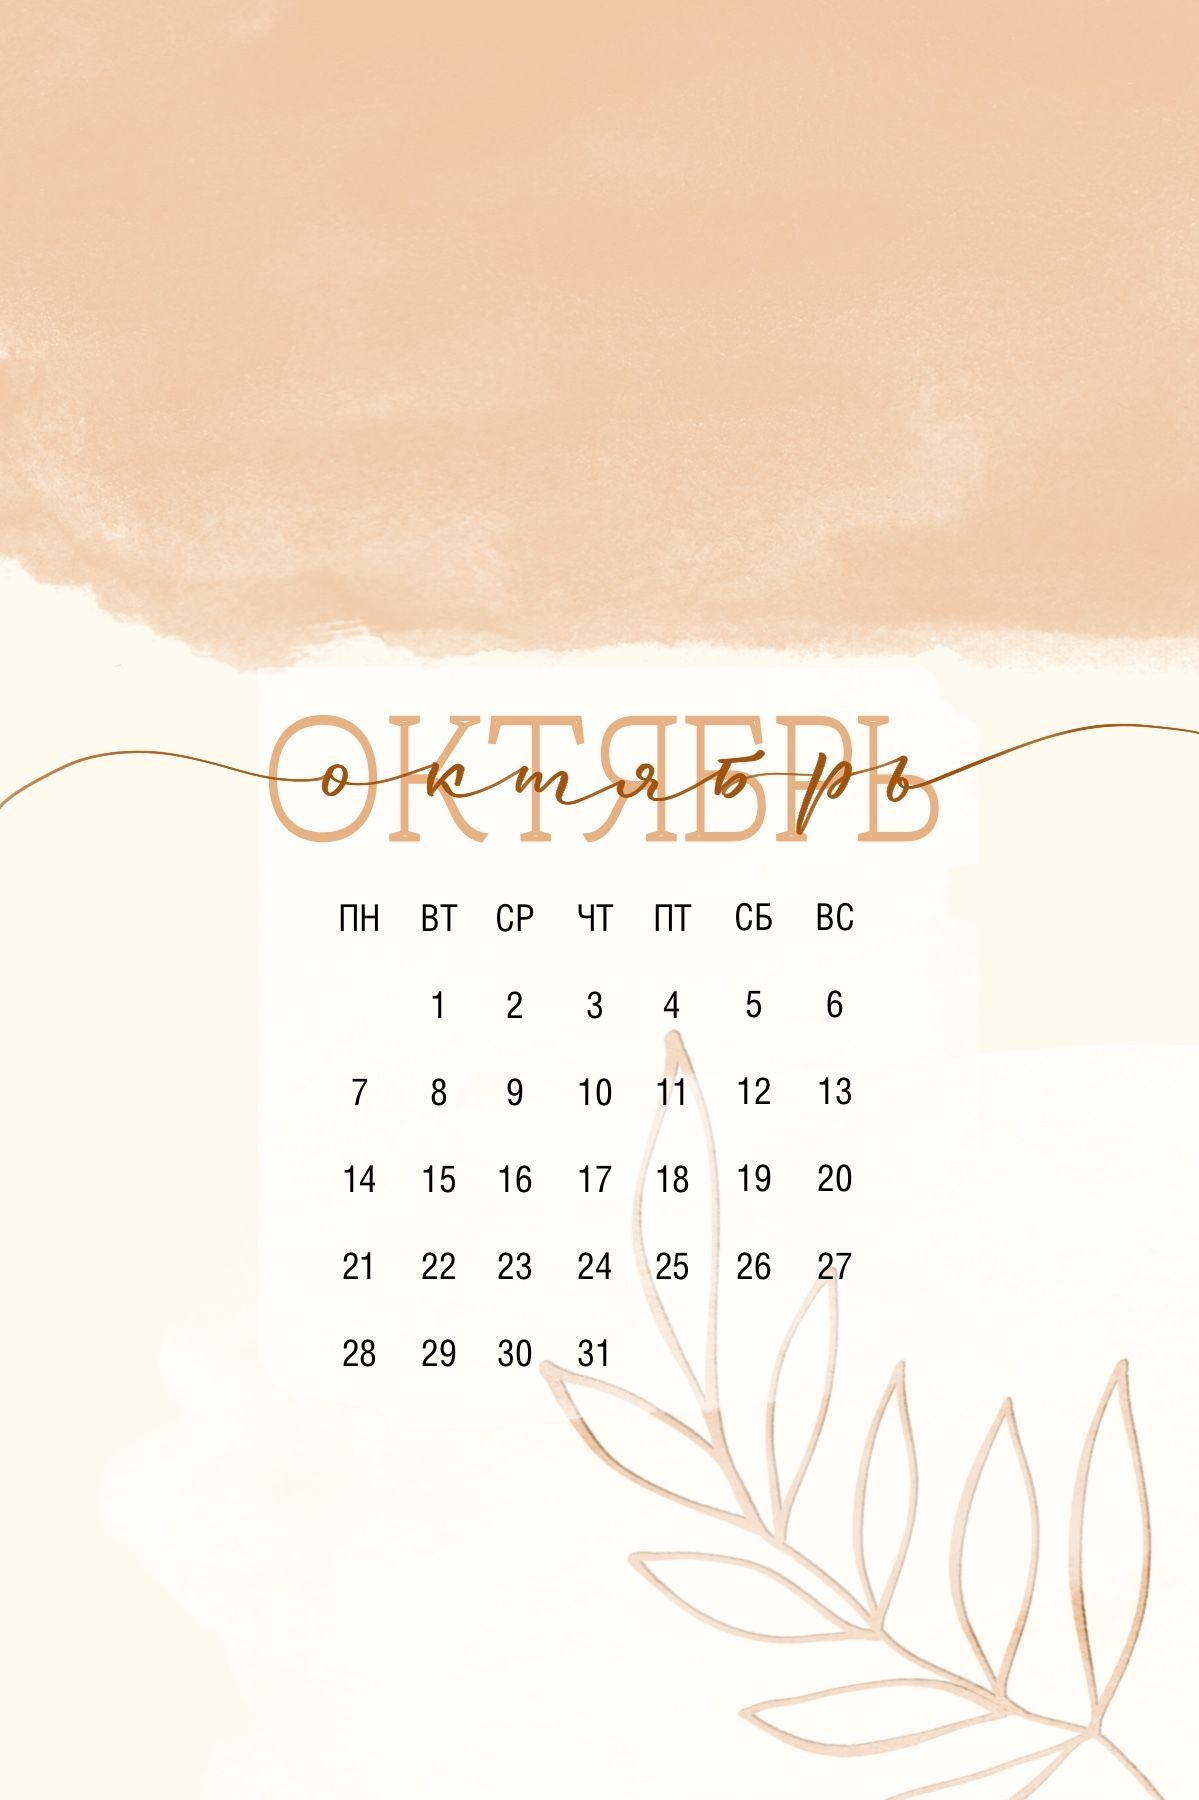 Lettering calendar iPhone wallpaper fall October  #octoberwallpaper iPhone wallpaper lettering calendar #lettering #calendar #october #wallpaper #walpaperiphone #iphonewallpaper #calendarwallpaper #октябрь #обоинателефон #леттеринг #арт #календарь #octoberwallpaper